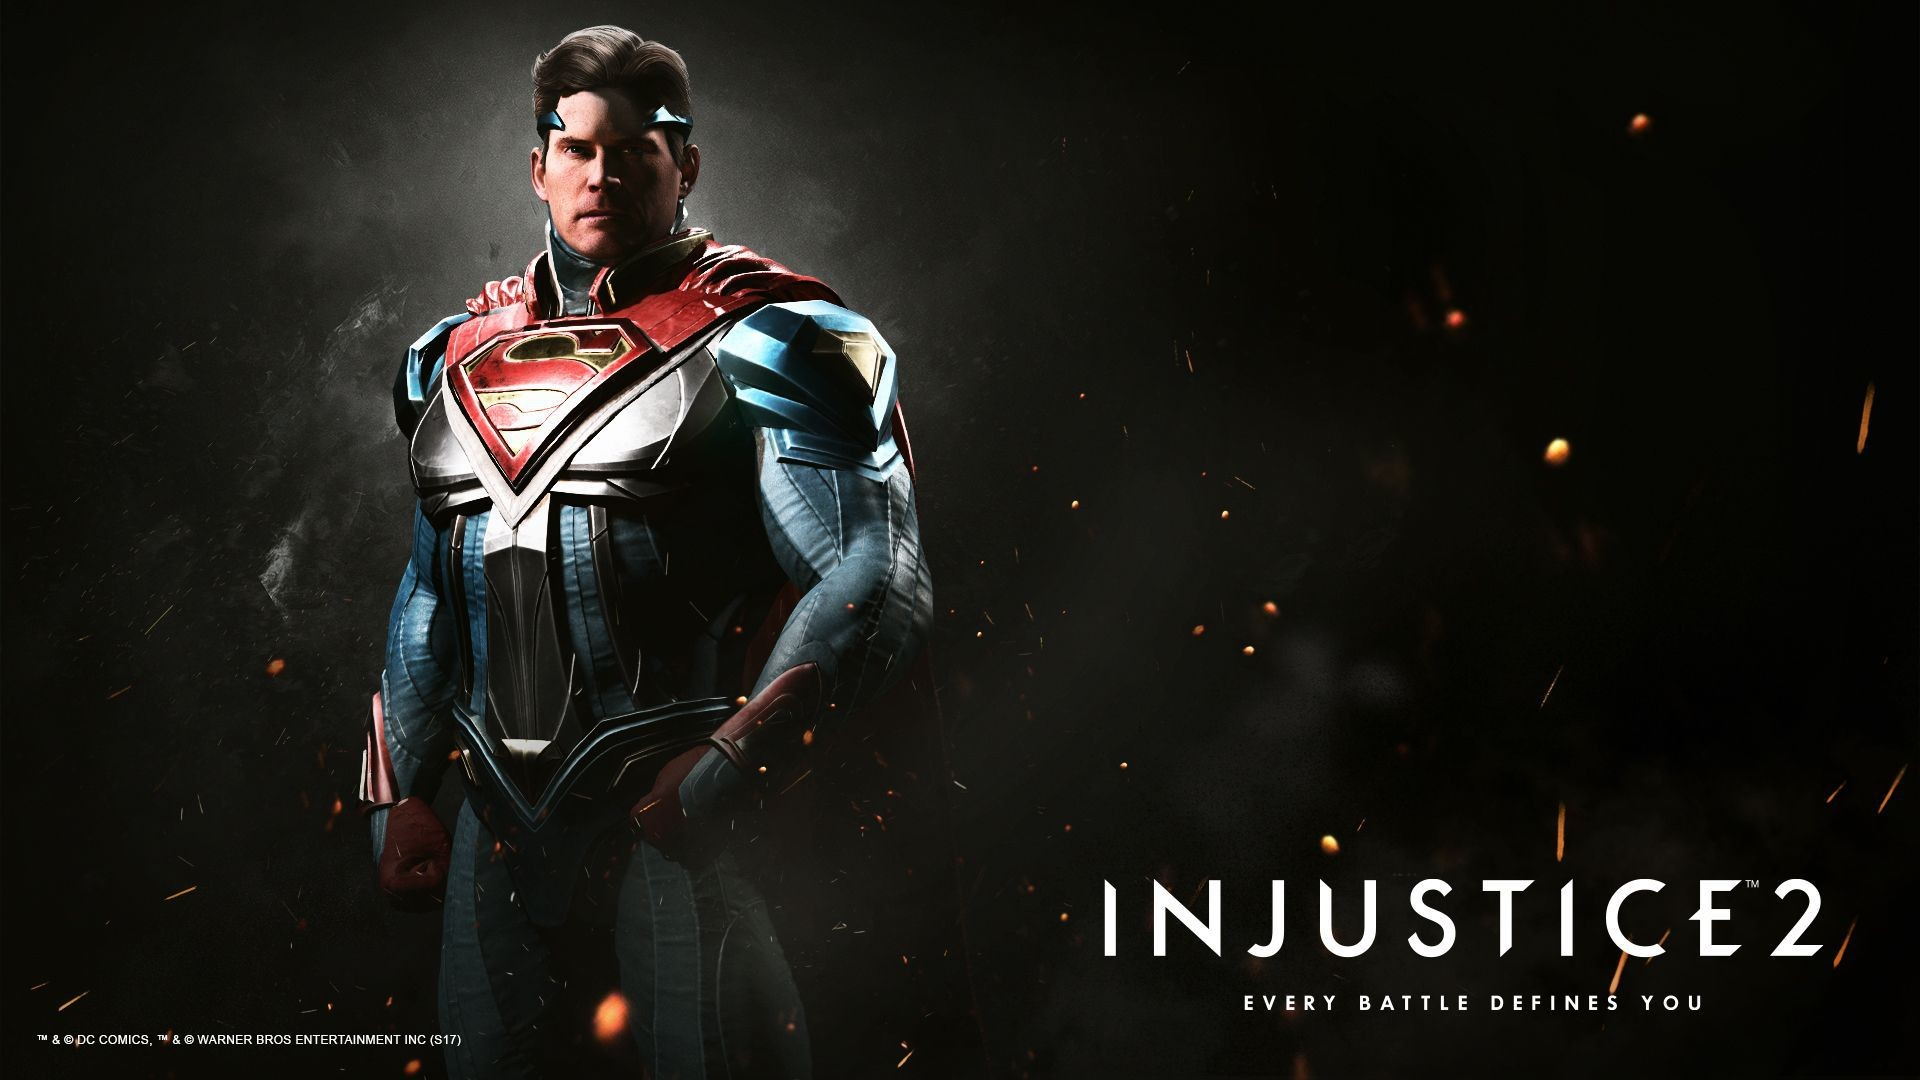 1920x1080 Download These And Other Injustice 2 Wallpapers From